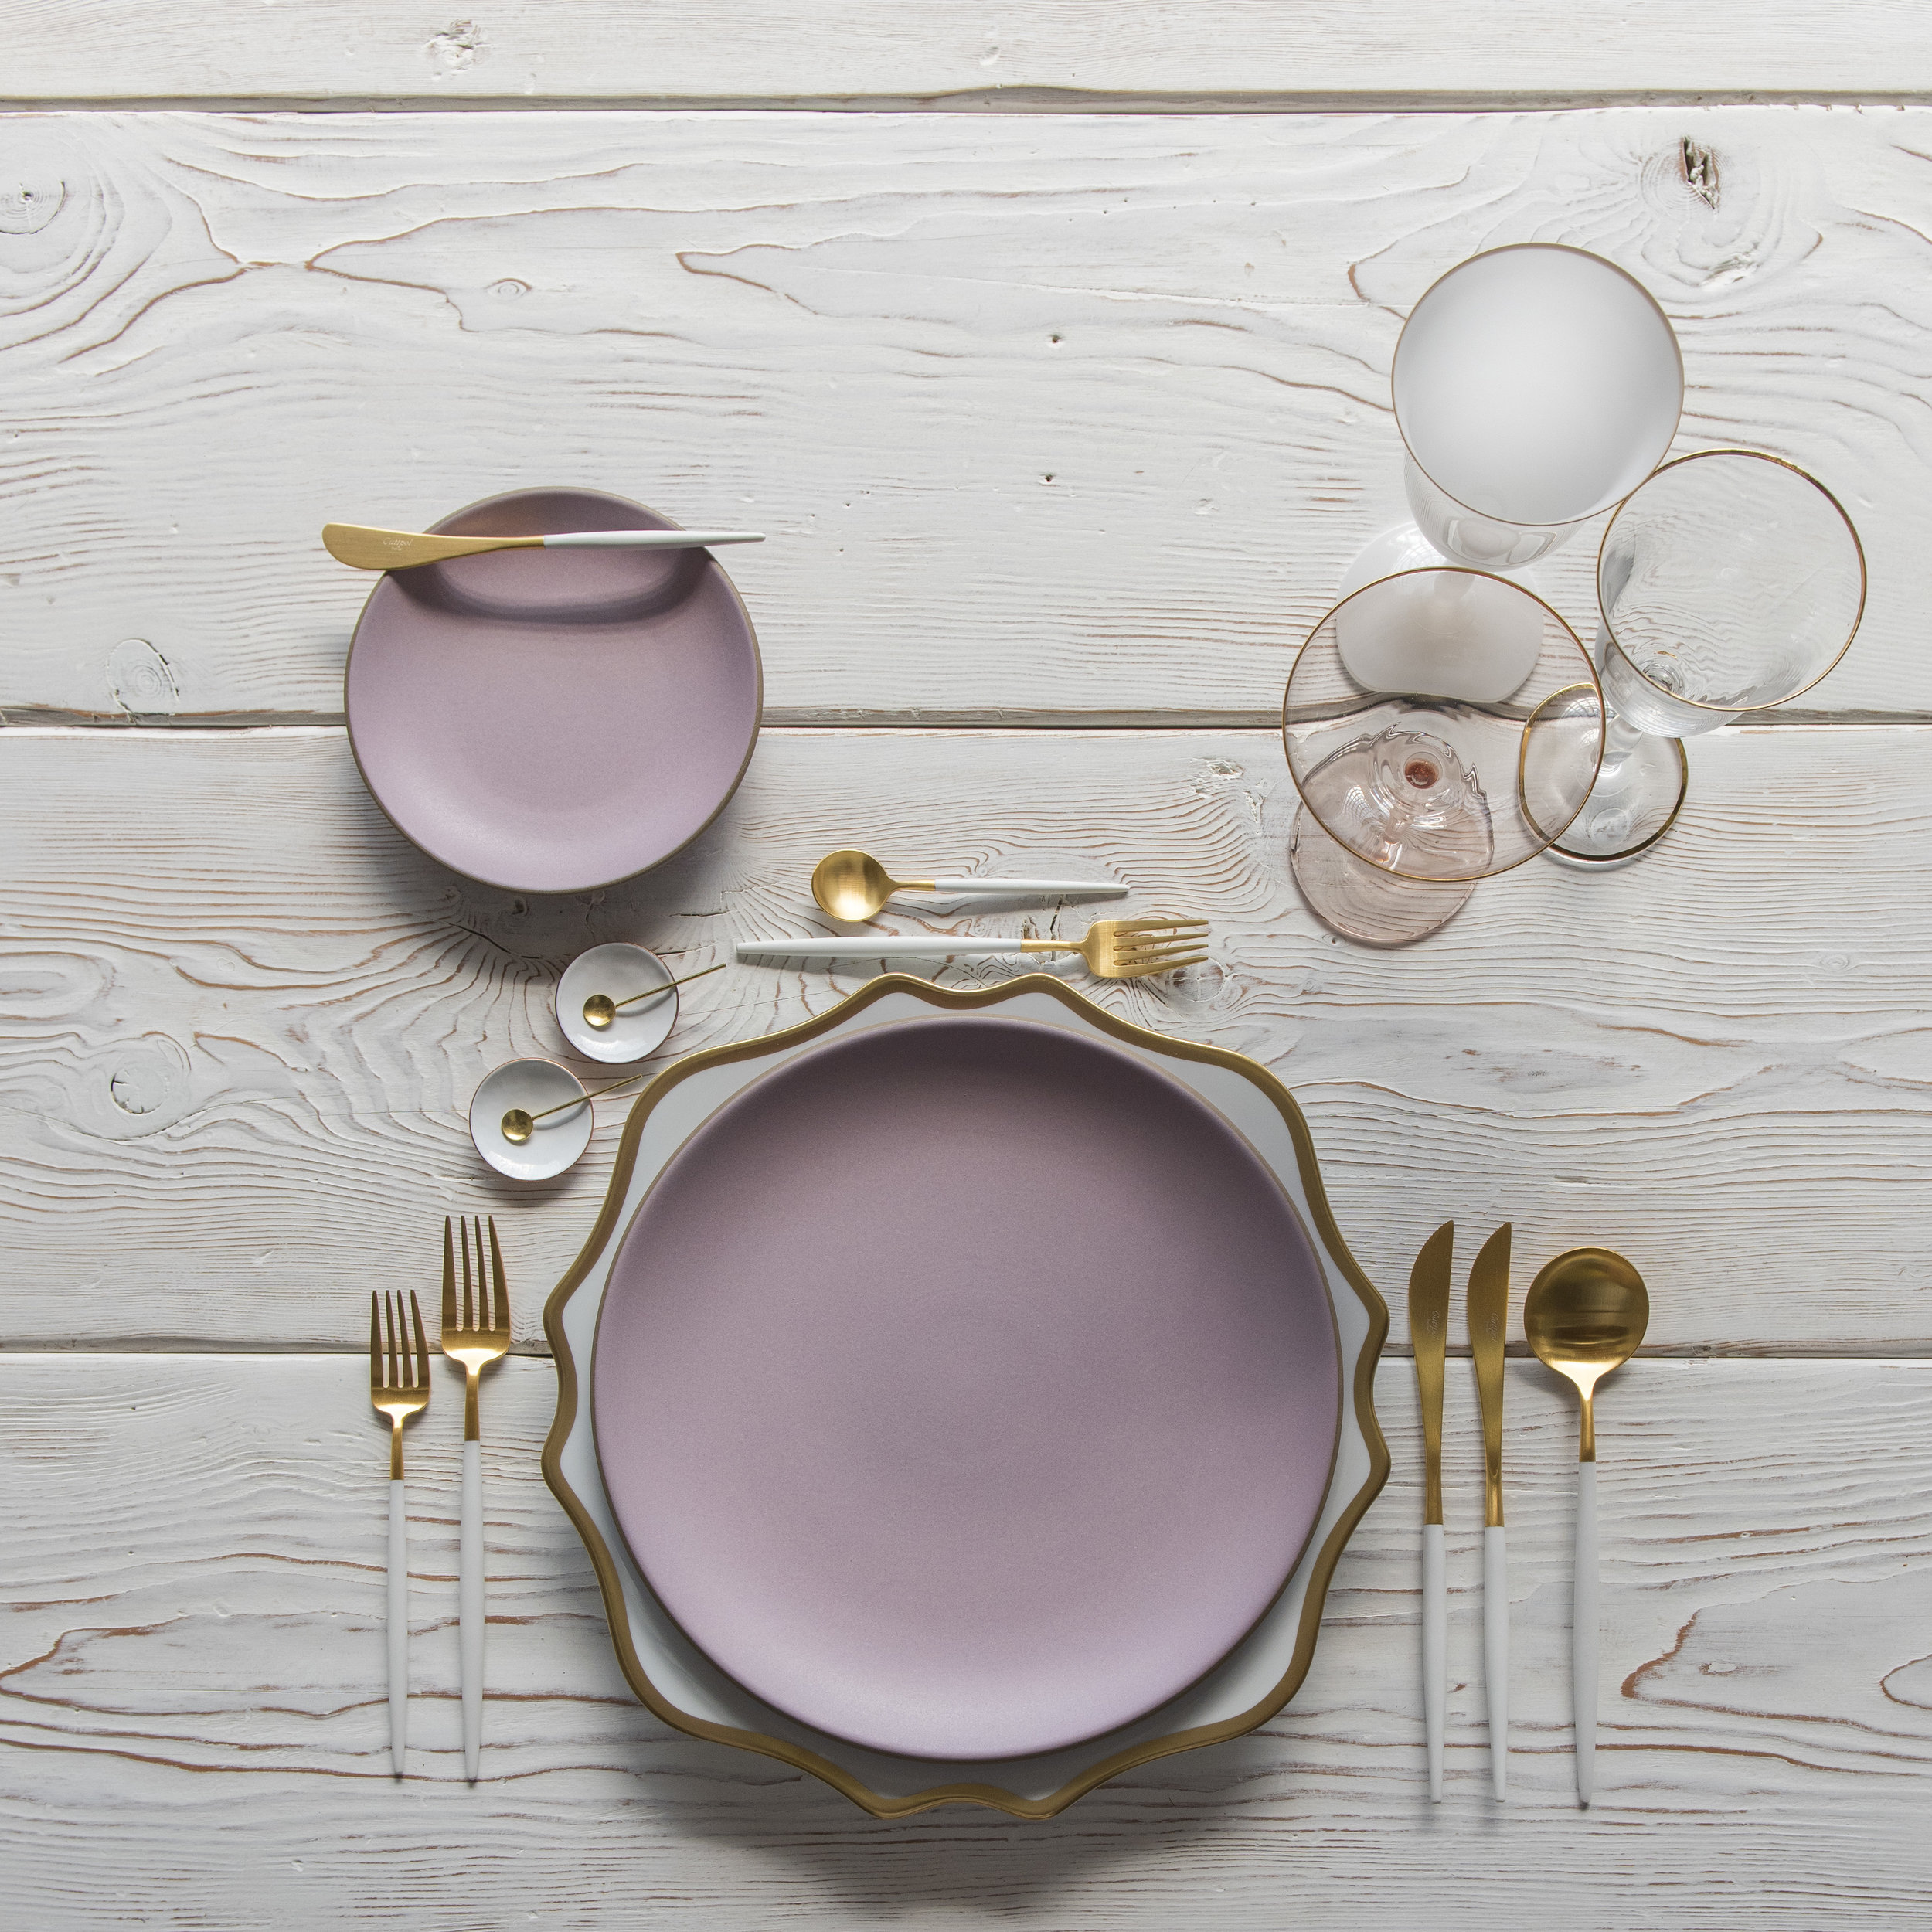 RENT: Anna Weatherley Chargers in White/Gold + Custom Heath Ceramics in Wildflower + Goa Flatware in Brushed 24k Gold/White + Chloe 24k Gold Rimmed Stemware + Chloe 24k Gold Rimmed Goblet in White + Bella 24k Gold Rimmed Stemware in Blush + White Enamel Salt Cellars + Tiny Gold Spoons  SHOP:Anna Weatherley Chargers in White/Gold + Goa Flatware in Brushed 24k Gold/White + Chloe 24k Gold Rimmed Stemware + Bella 24k Gold Rimmed Stemware in Blush + White Enamel Salt Cellars + Tiny Gold Spoons